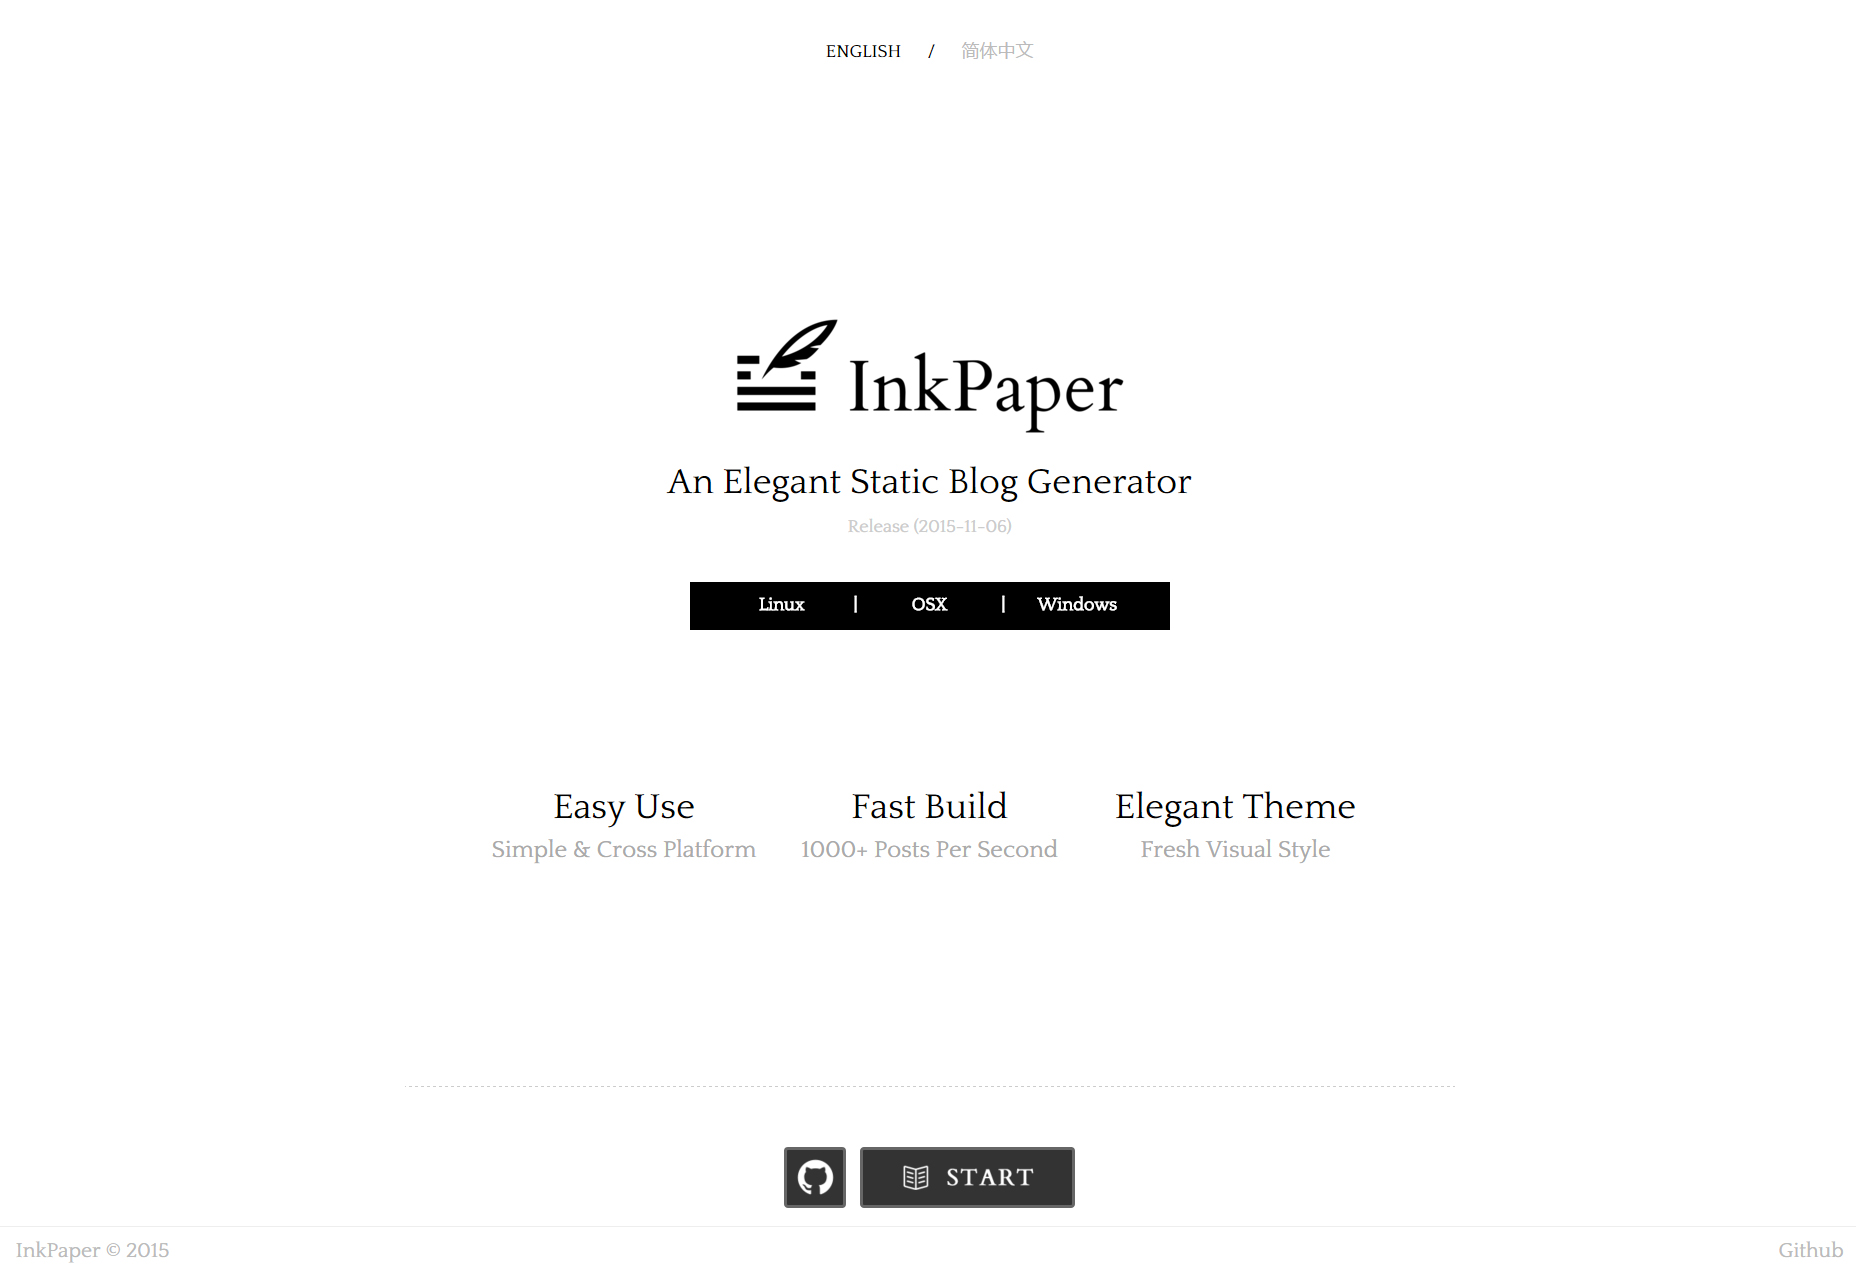 InkPaper: Desktop Static Blog Generator